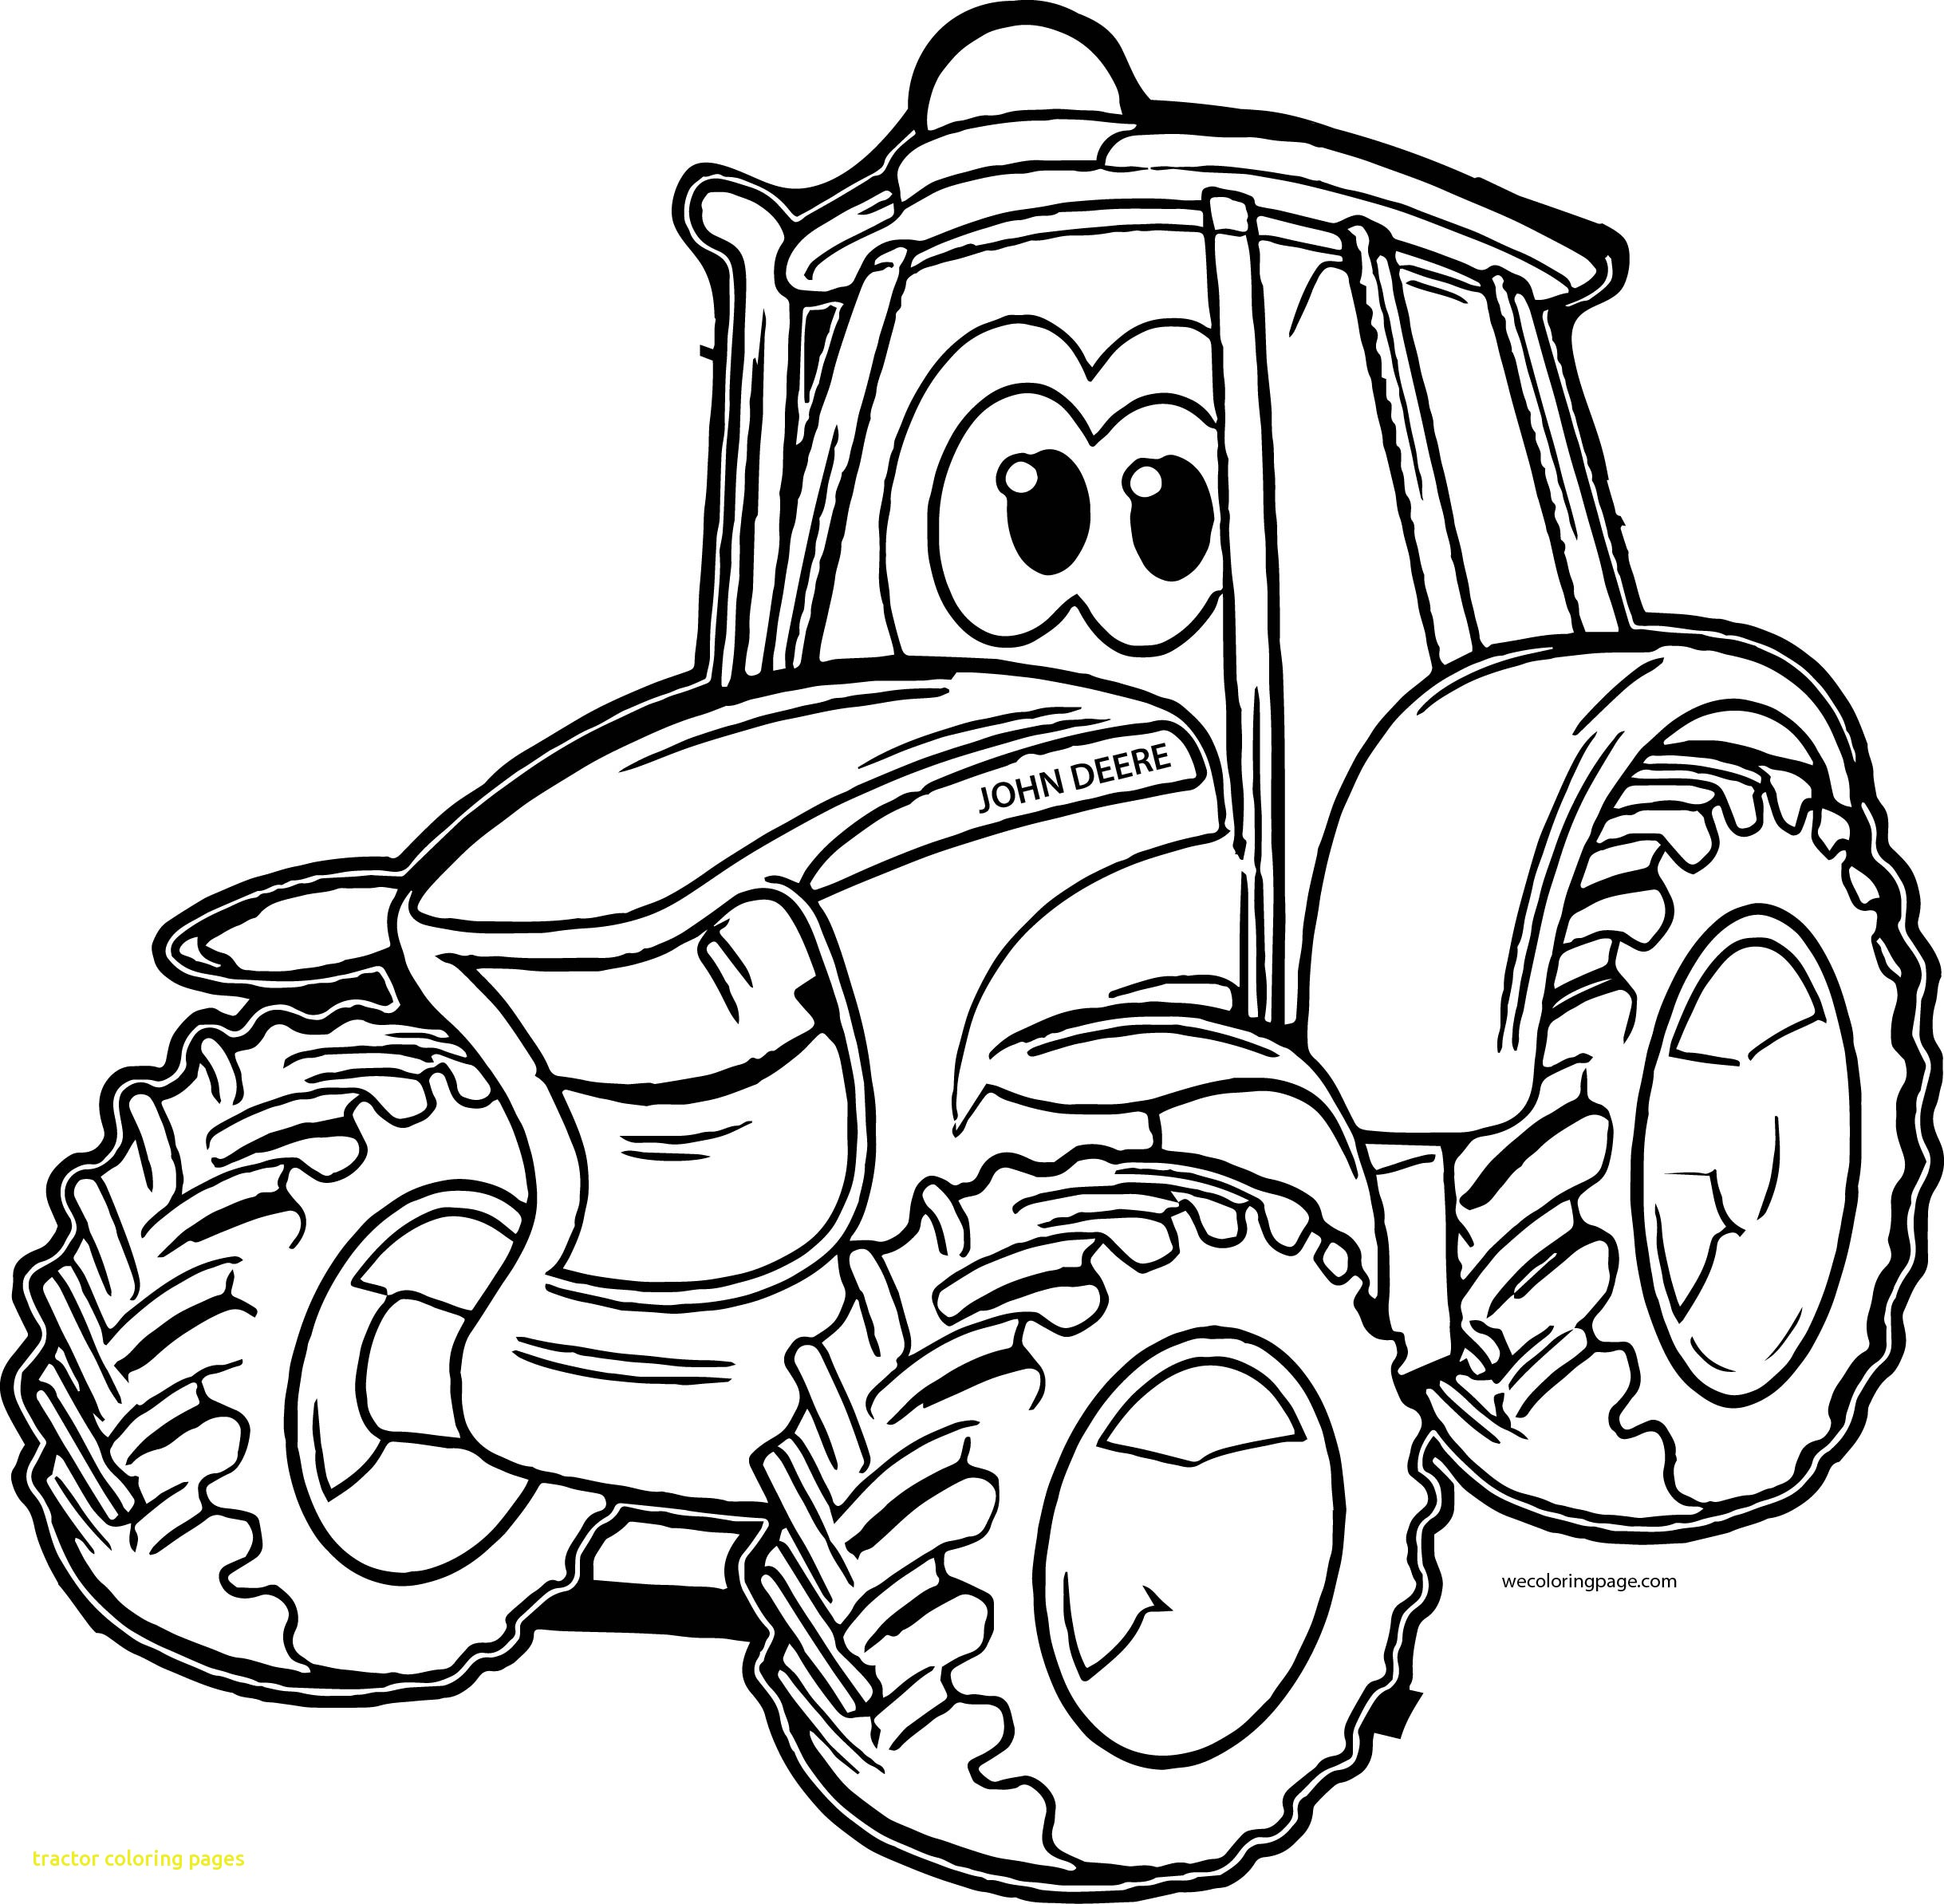 tractor coloring sheets tractor coloring pages to download and print for free tractor sheets coloring